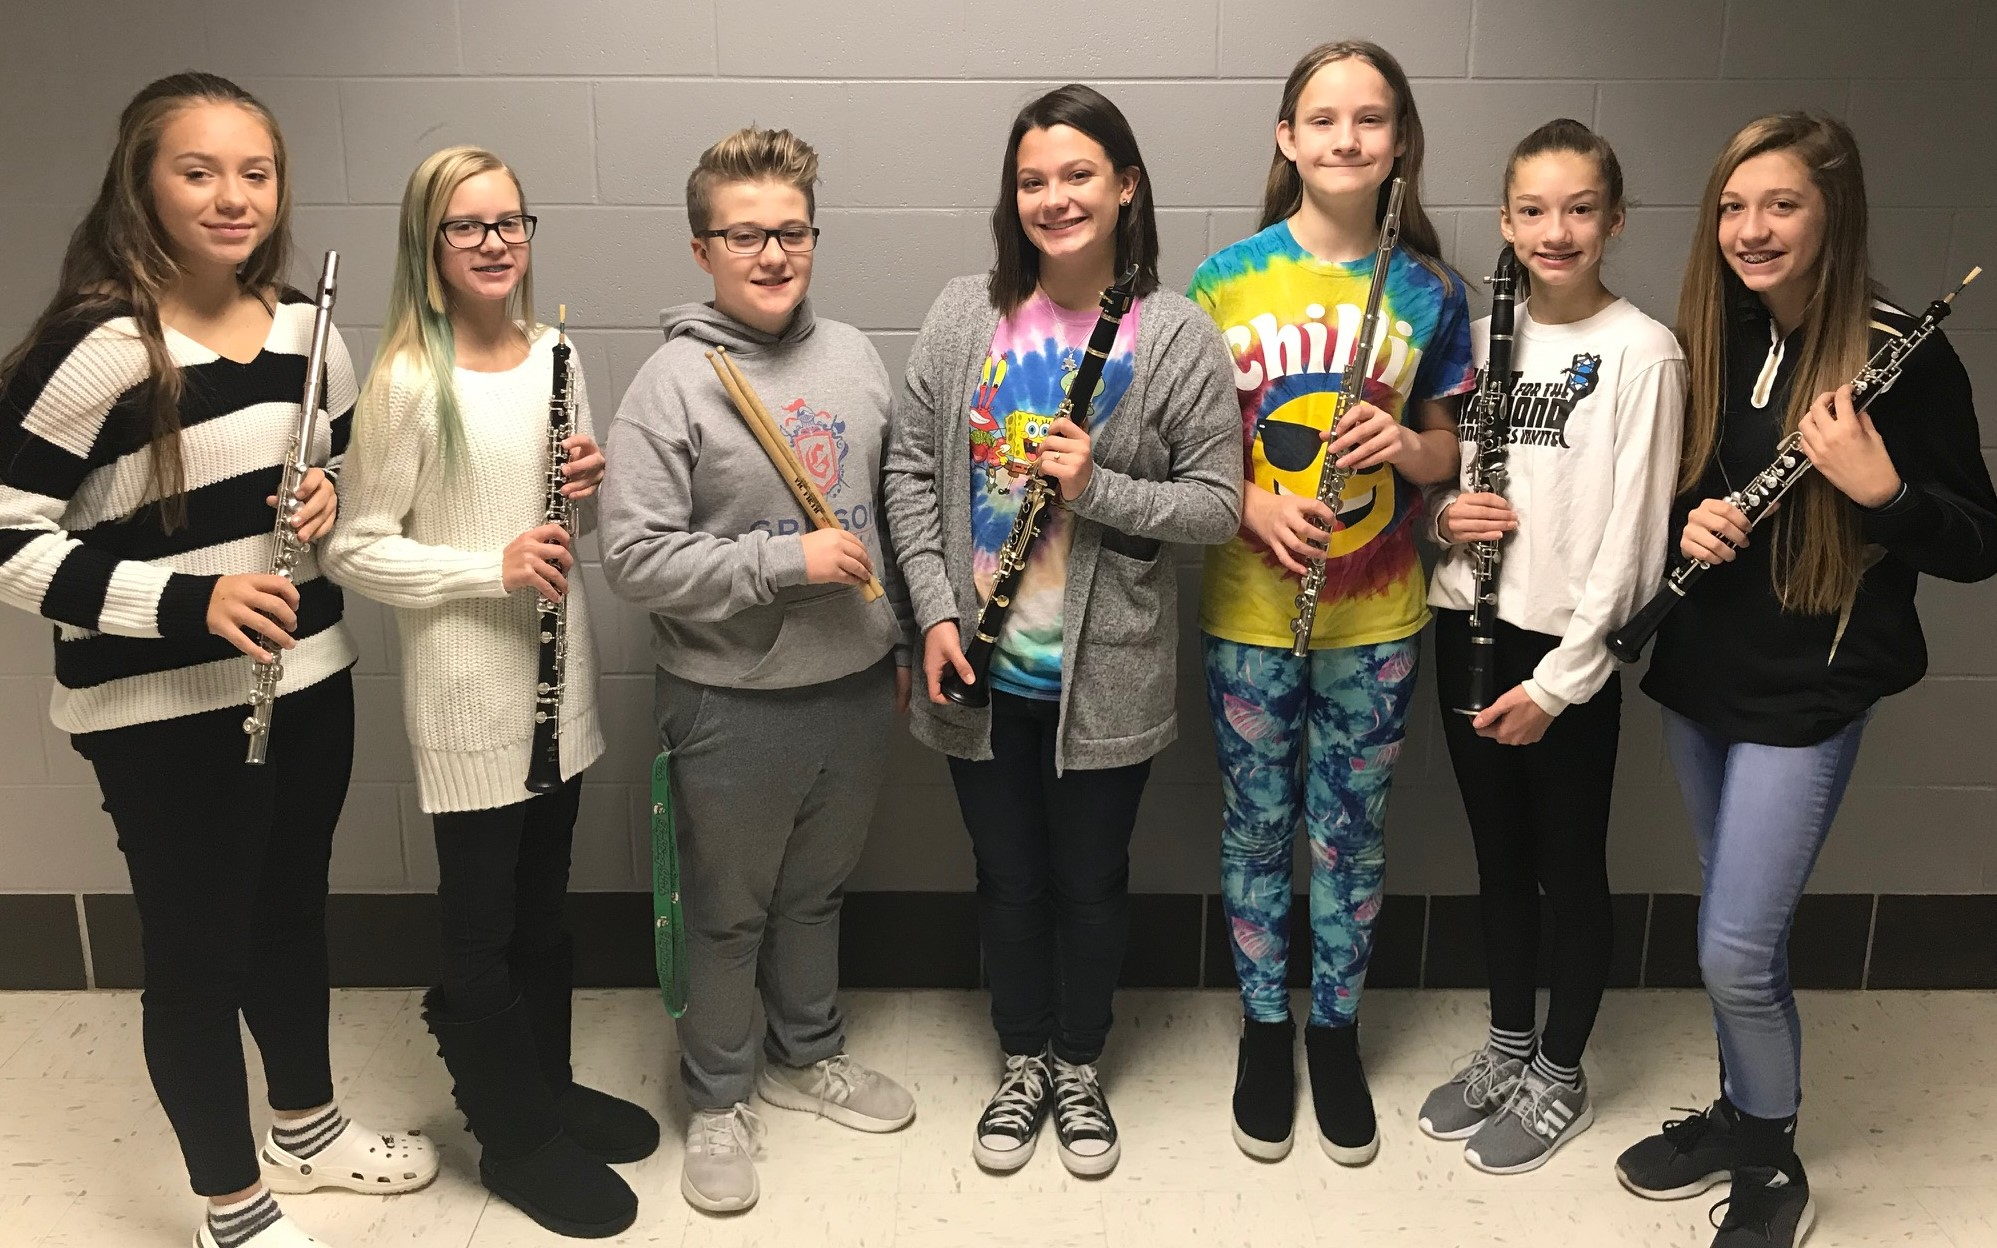 Grissom students named to 2019 Middle School Three Rivers Honor Band